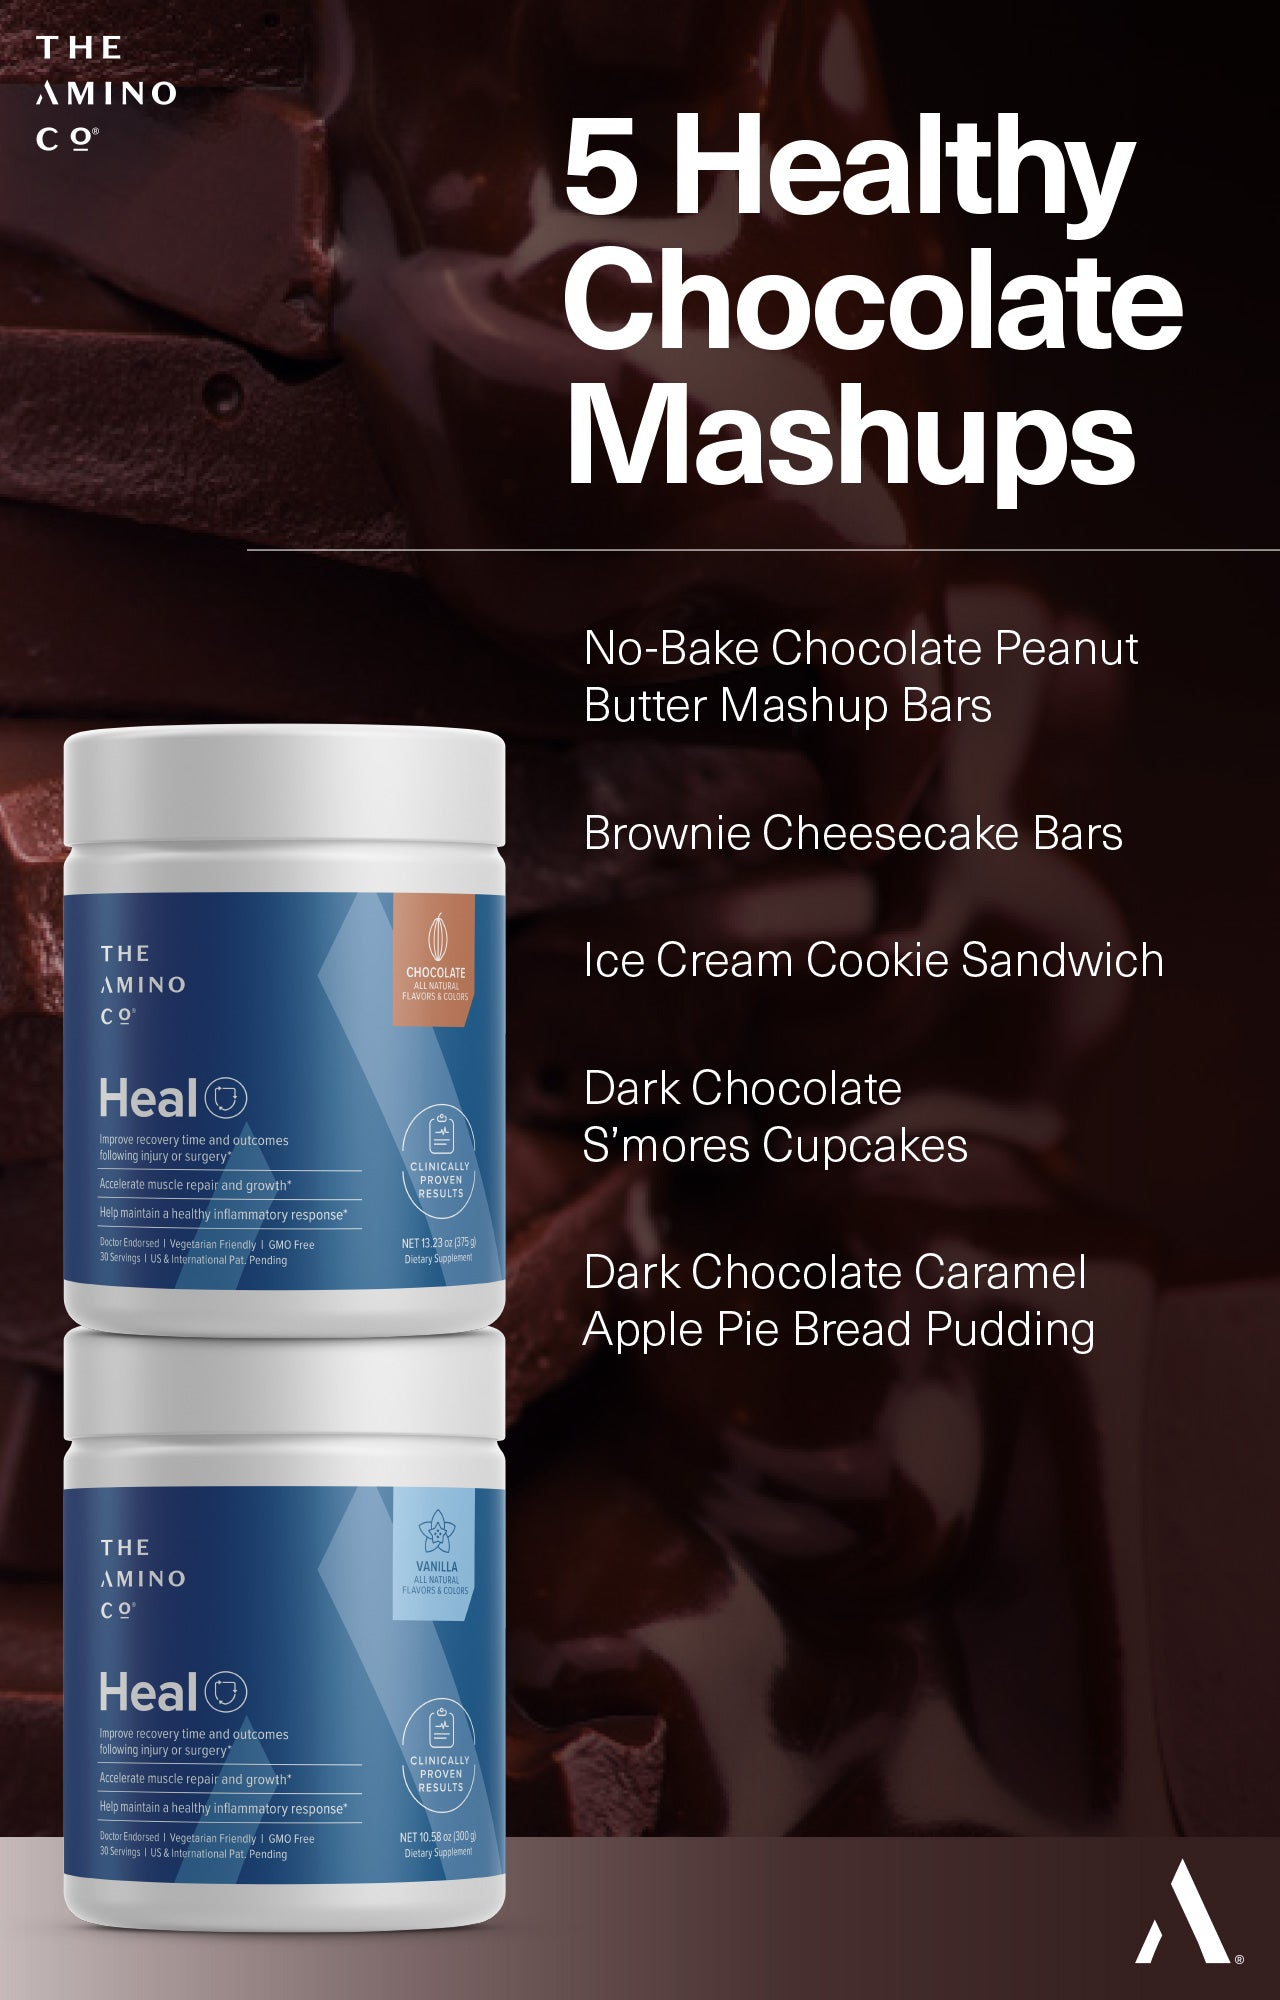 5 Healthy Chocolate Mashups